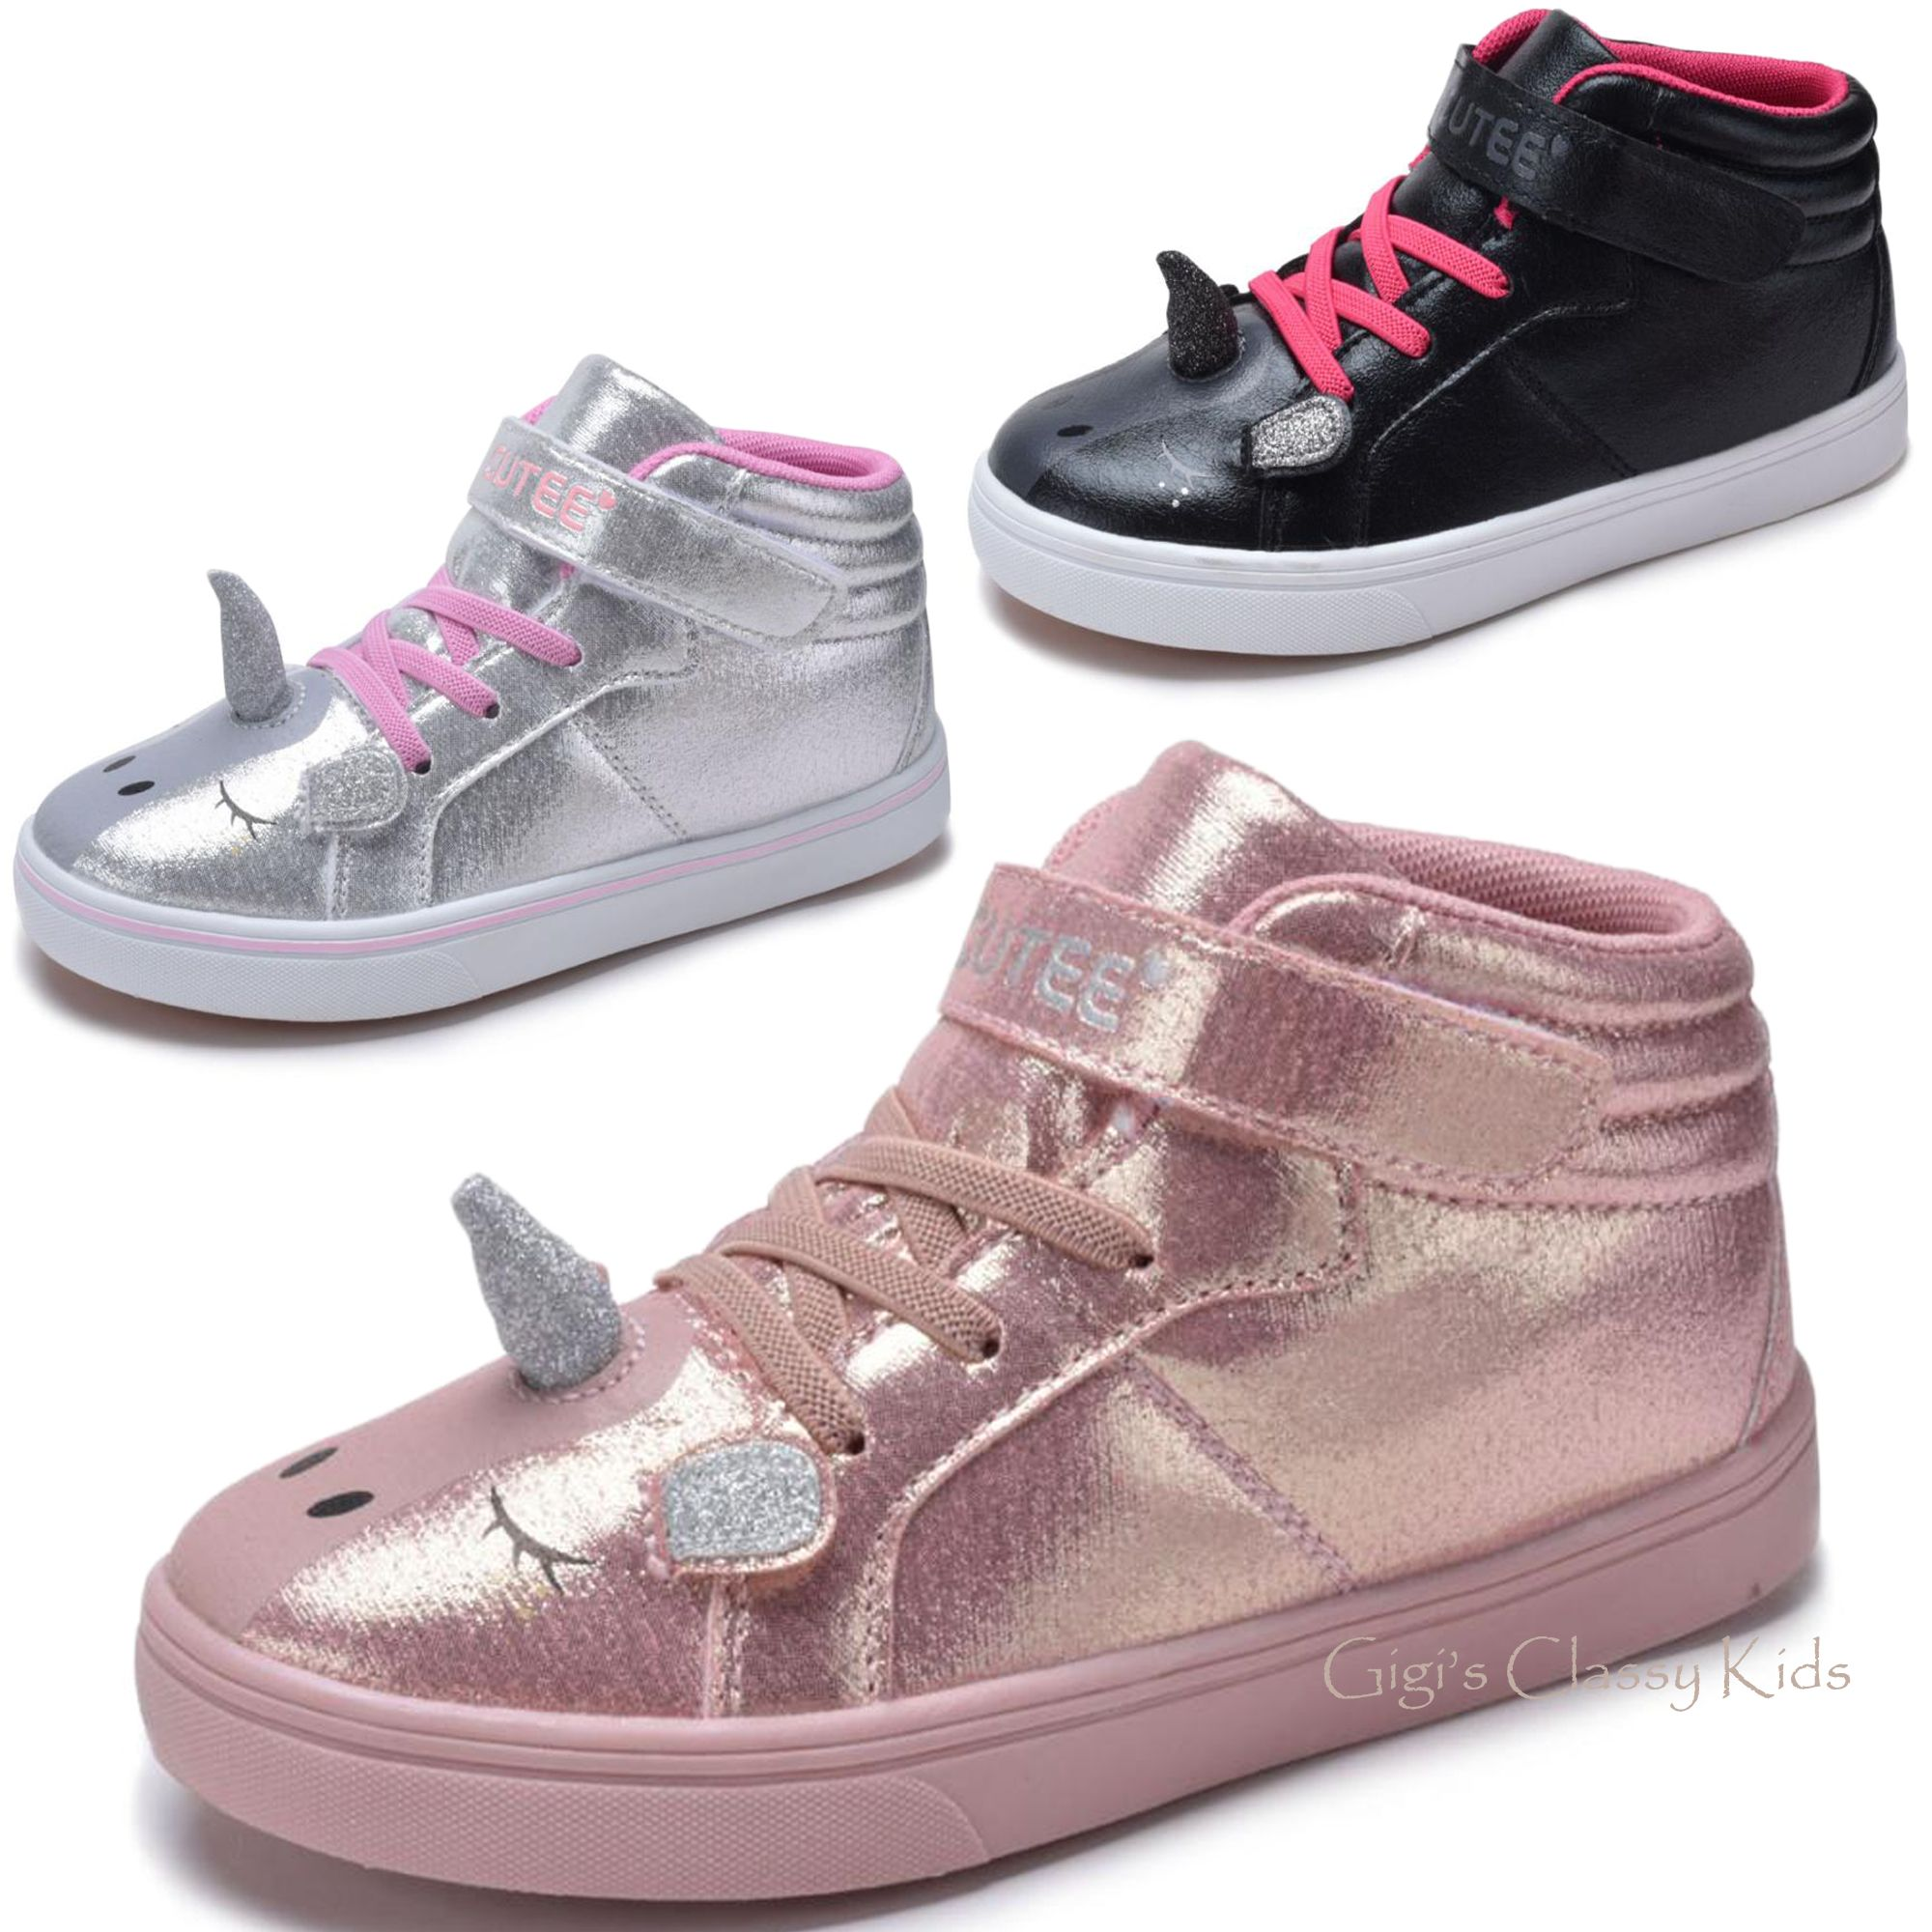 Unicorn Girls Sneakes Kid Shoes Tennis Shoes Sneakers High Top Sneakers